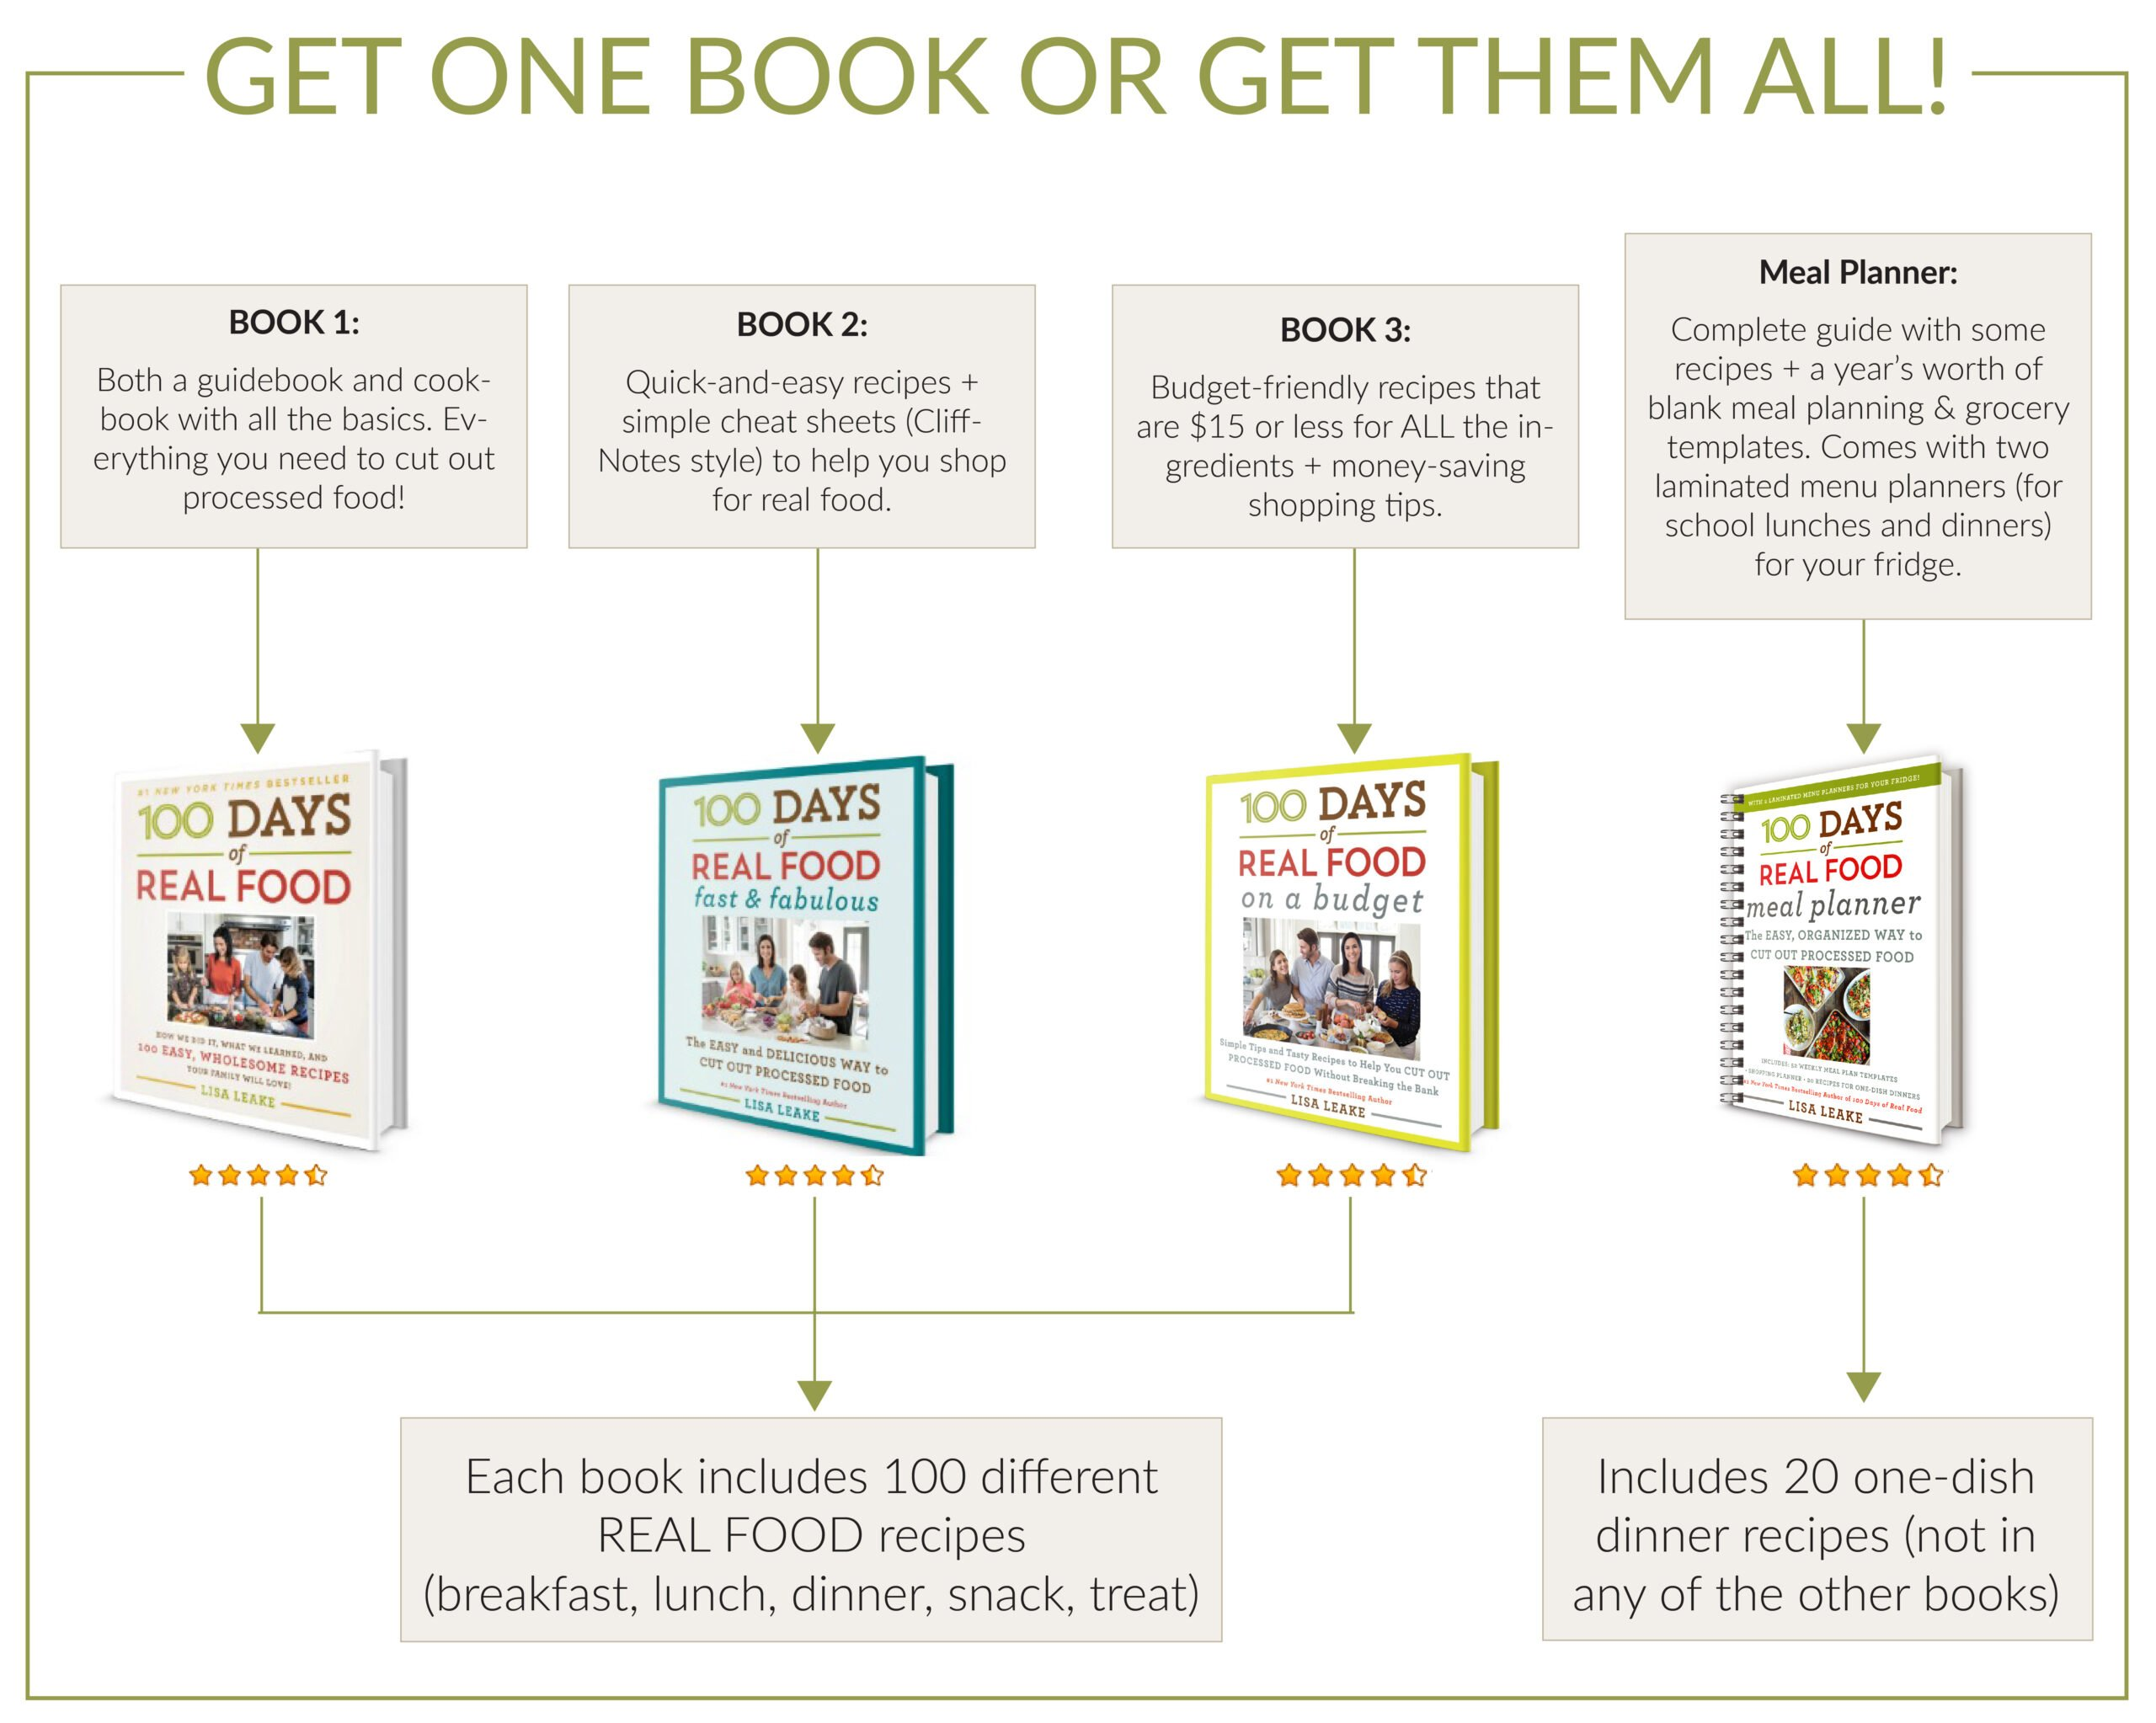 100 Days of Real Food book comparison chart